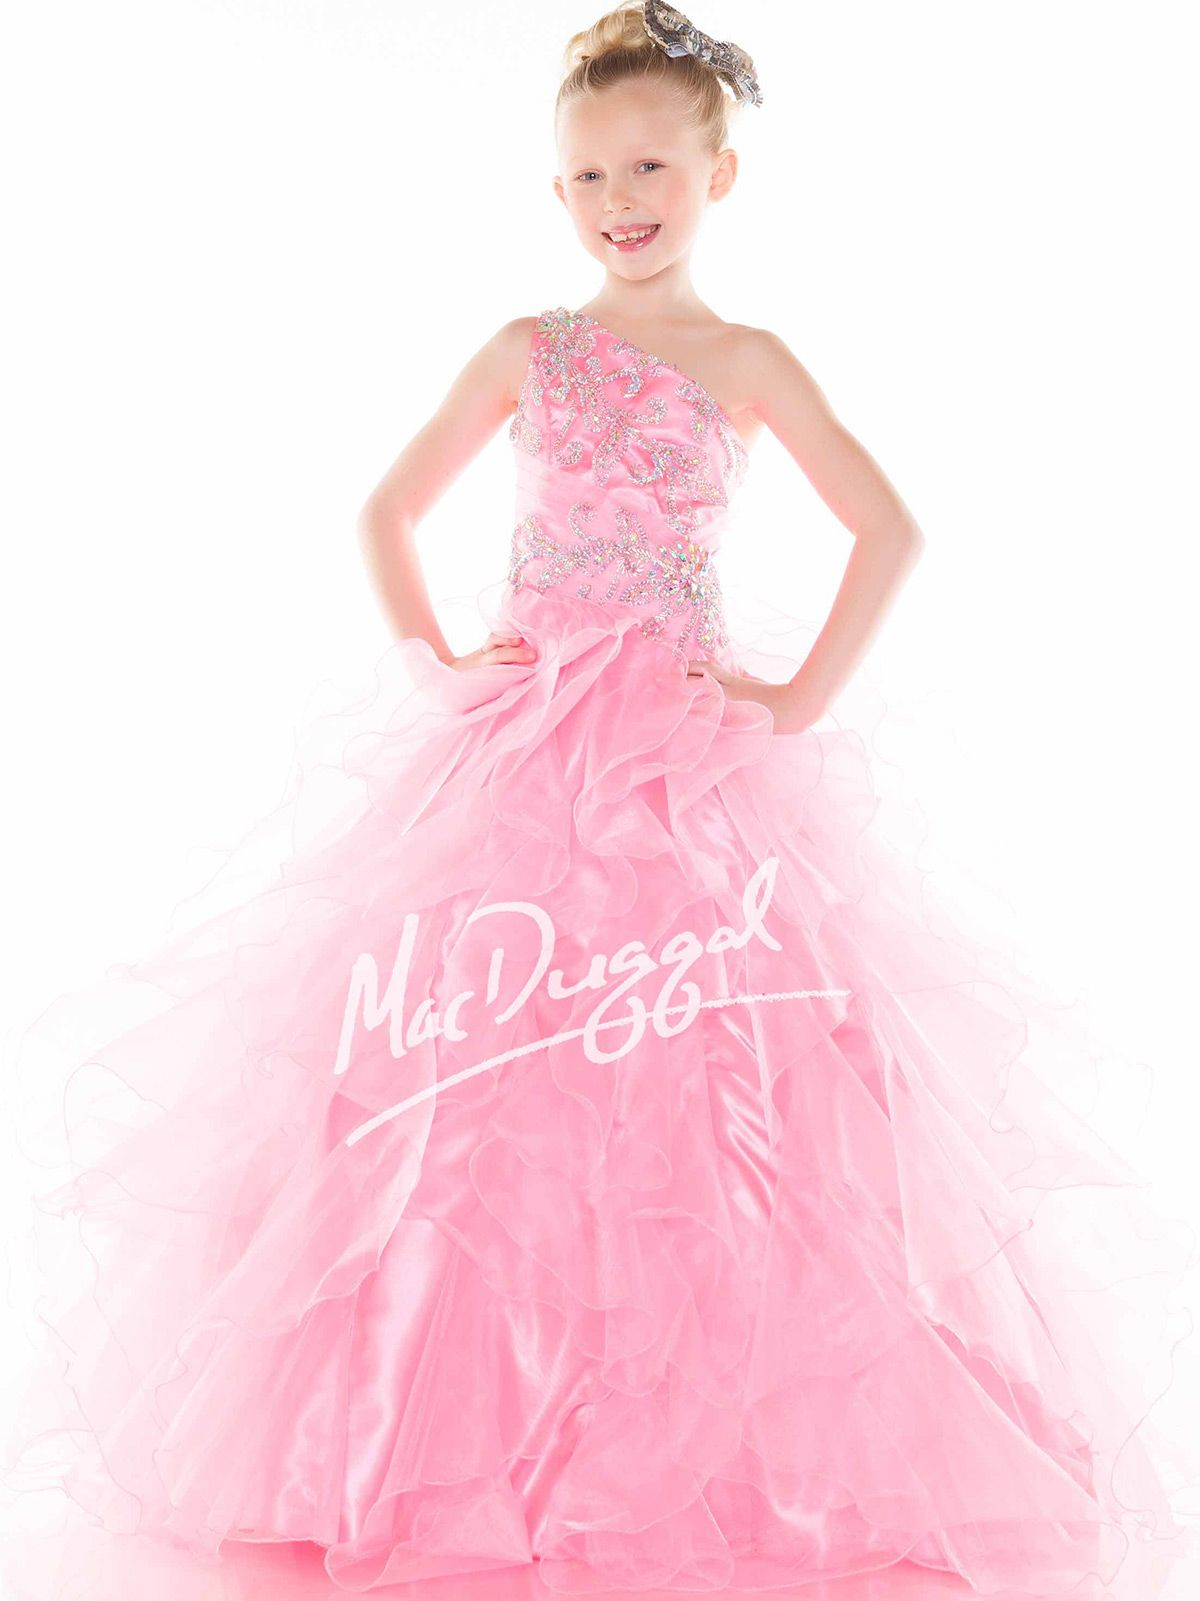 Make this beautiful Mac Duggal Sugar pageant dress perfect for your ...